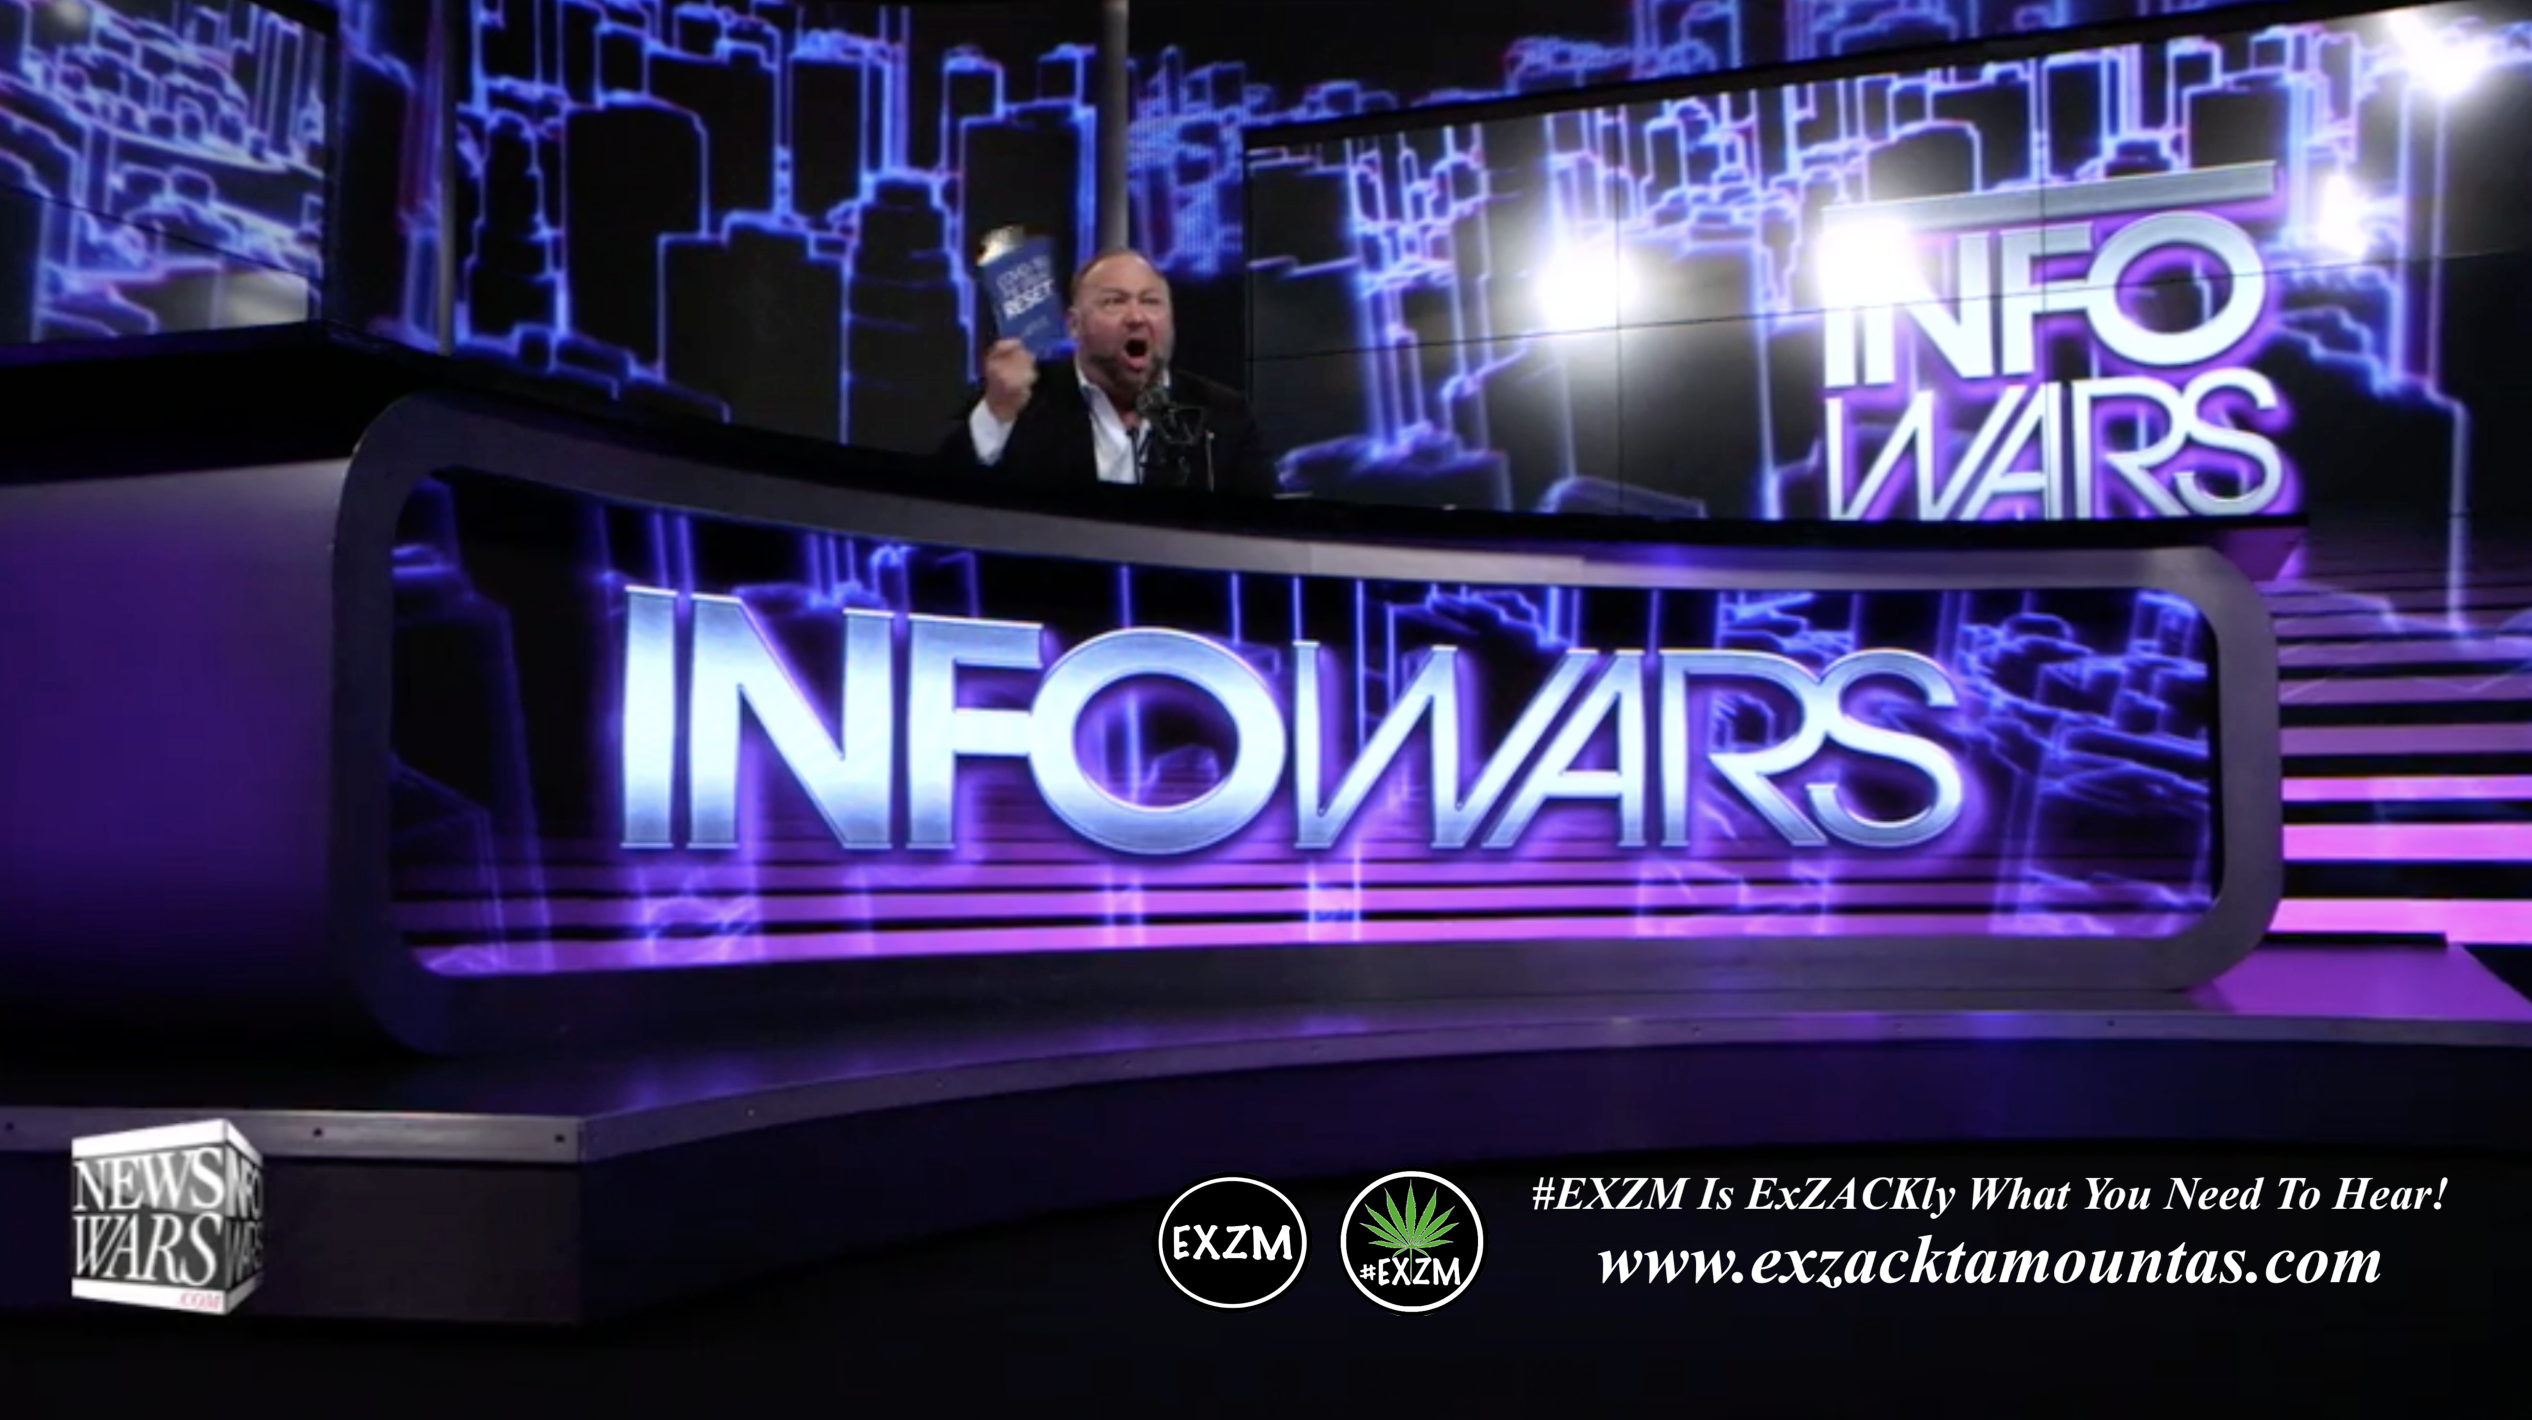 Alex Jones Live Infowars Studio EXZM Zack Mount May 14th 2021 copy